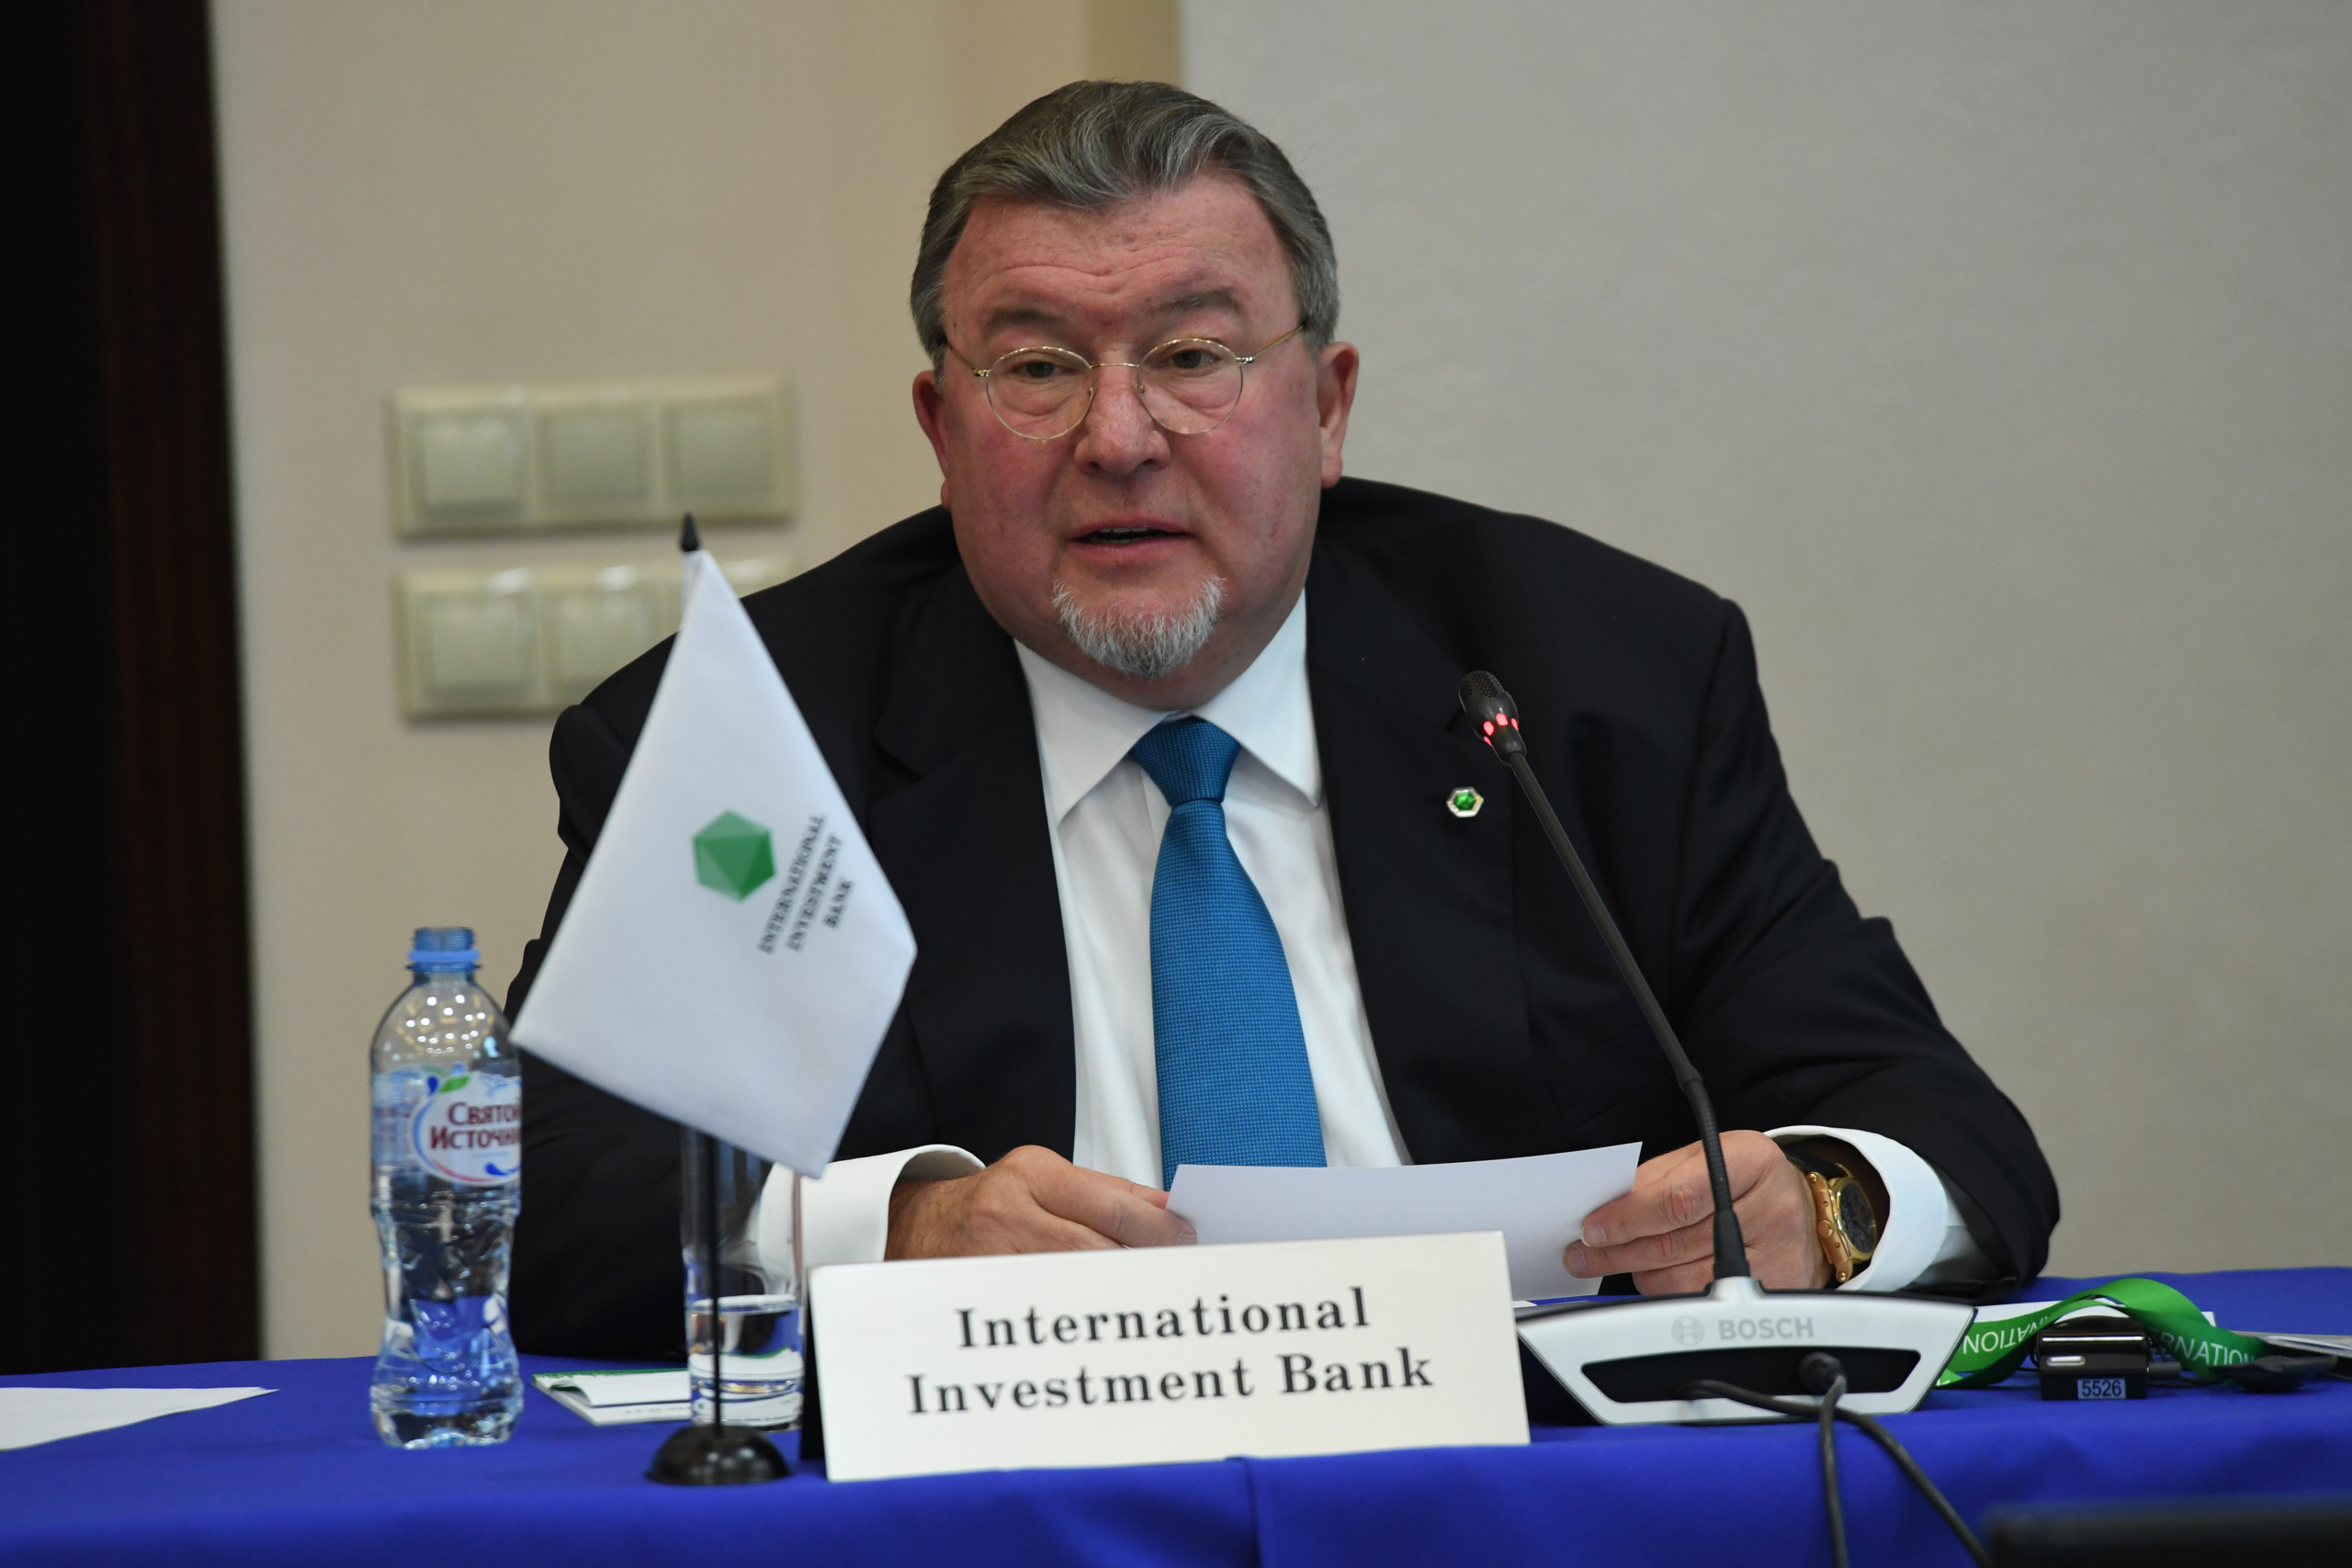 Portal SME.SK: International banks have signed an agreement on establishing a joint group